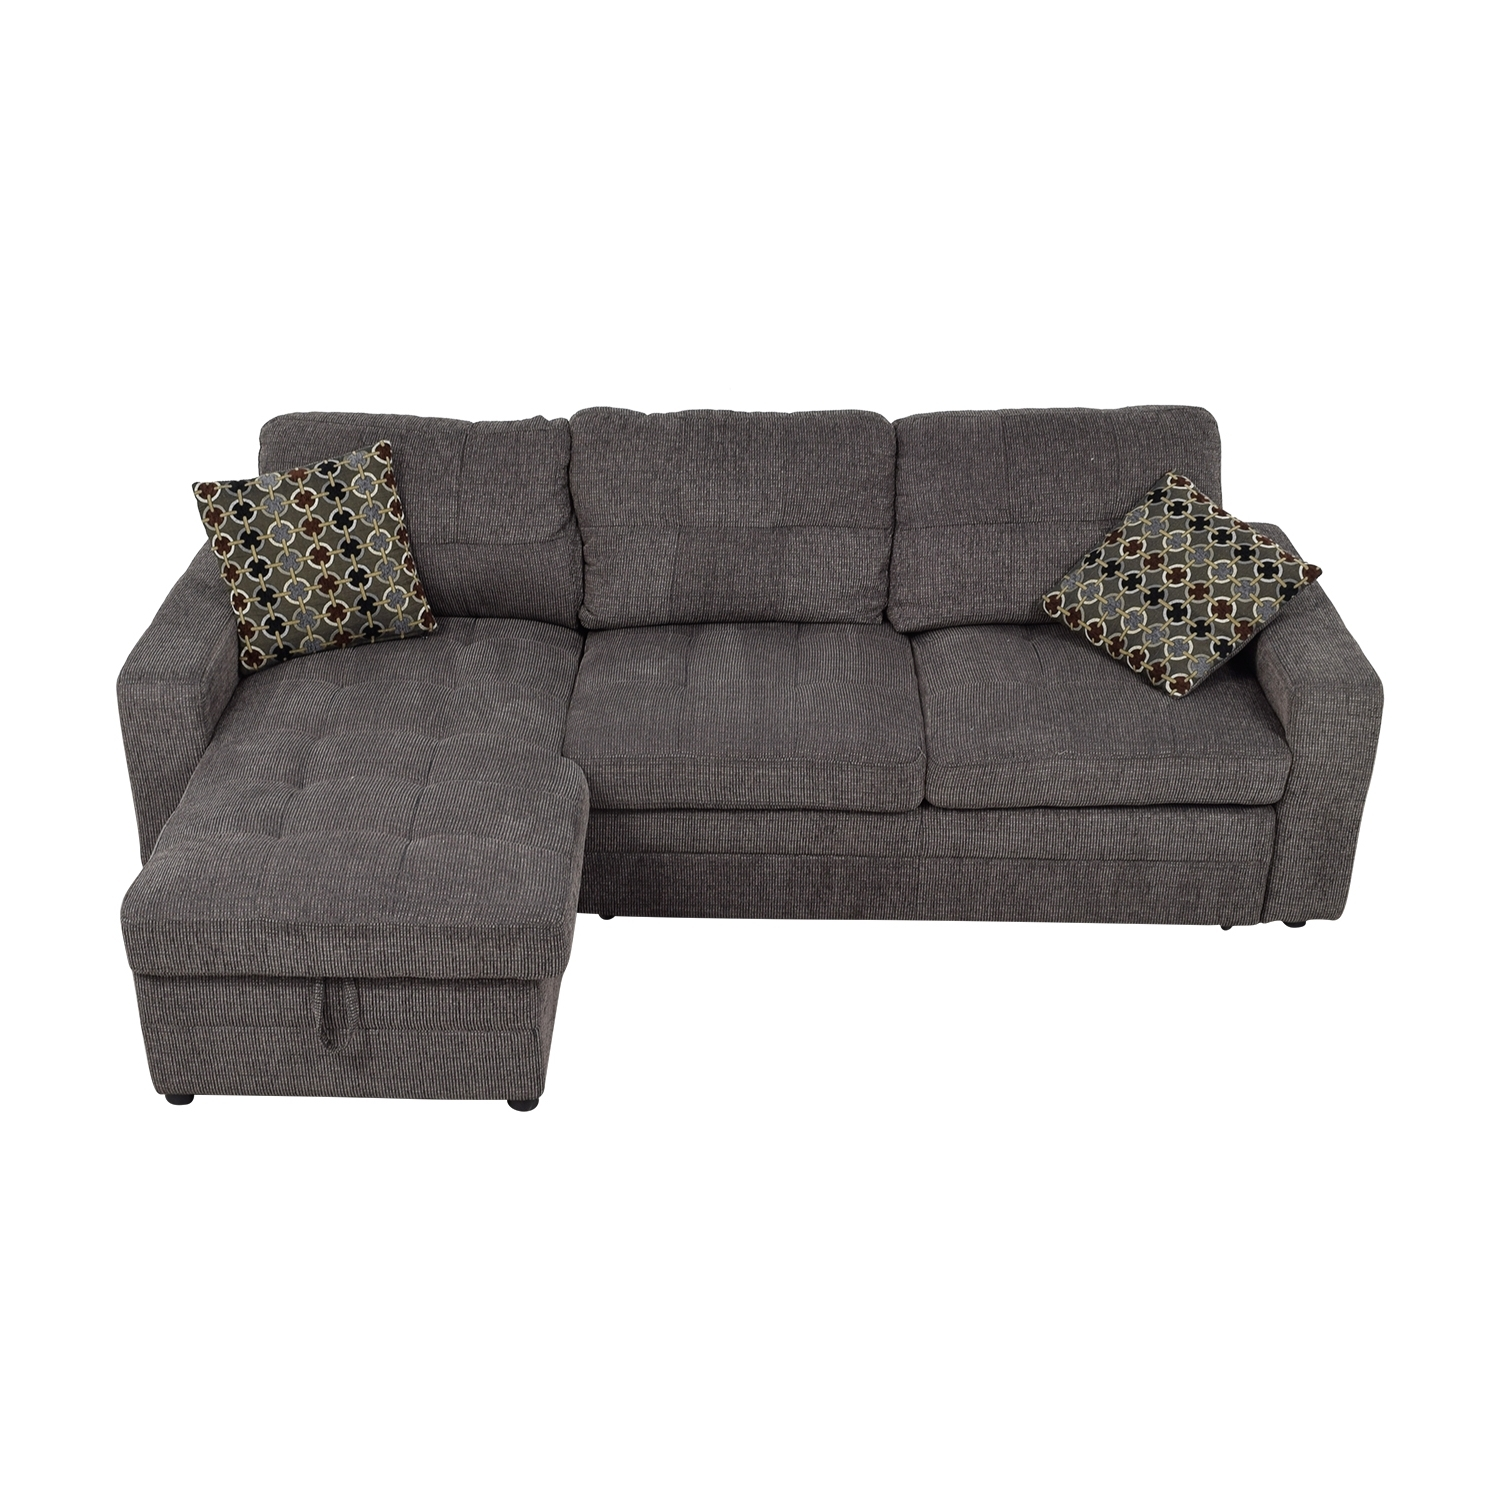 Used Sectional Sofas With Regard To Trendy Sectionals: Used Sectionals For Sale (Gallery 7 of 20)